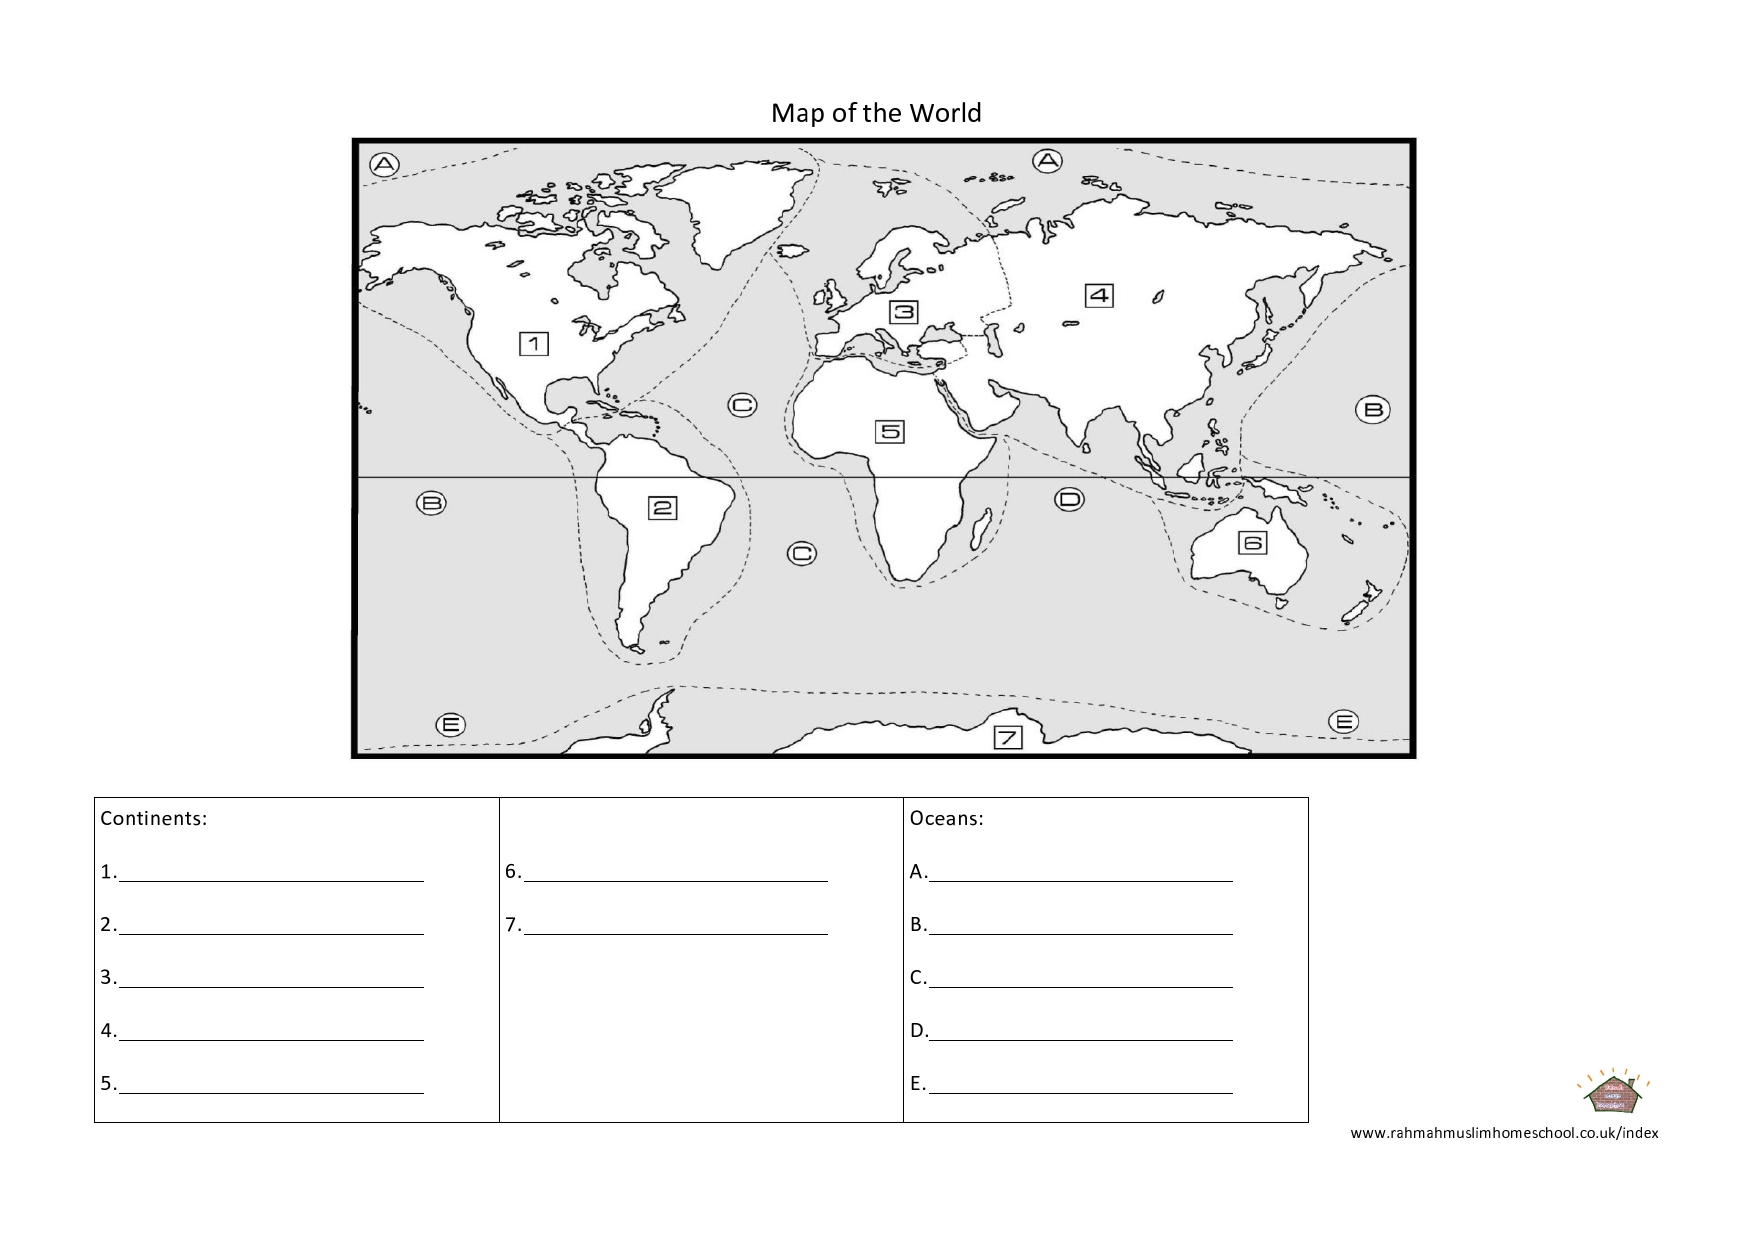 Continents And Oceans Worksheet: Geography  Continents and Oceans Worksheet   The Resources of    ,